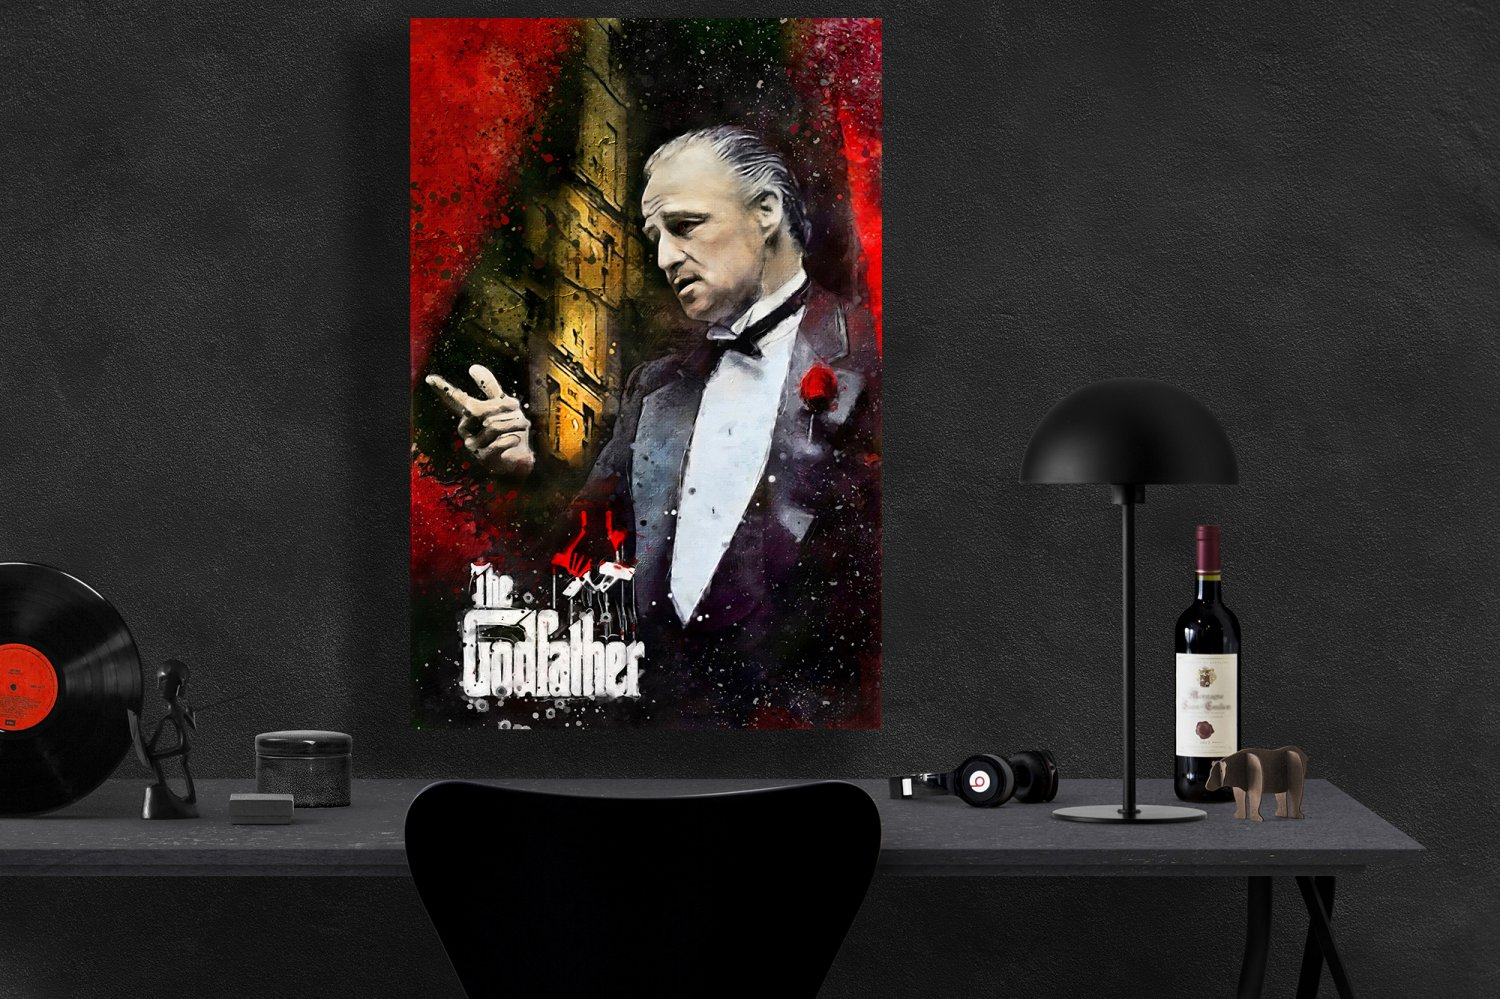 The Godfather, Vito Corleone, Marlon Brando   13x19 inches Canvas Print